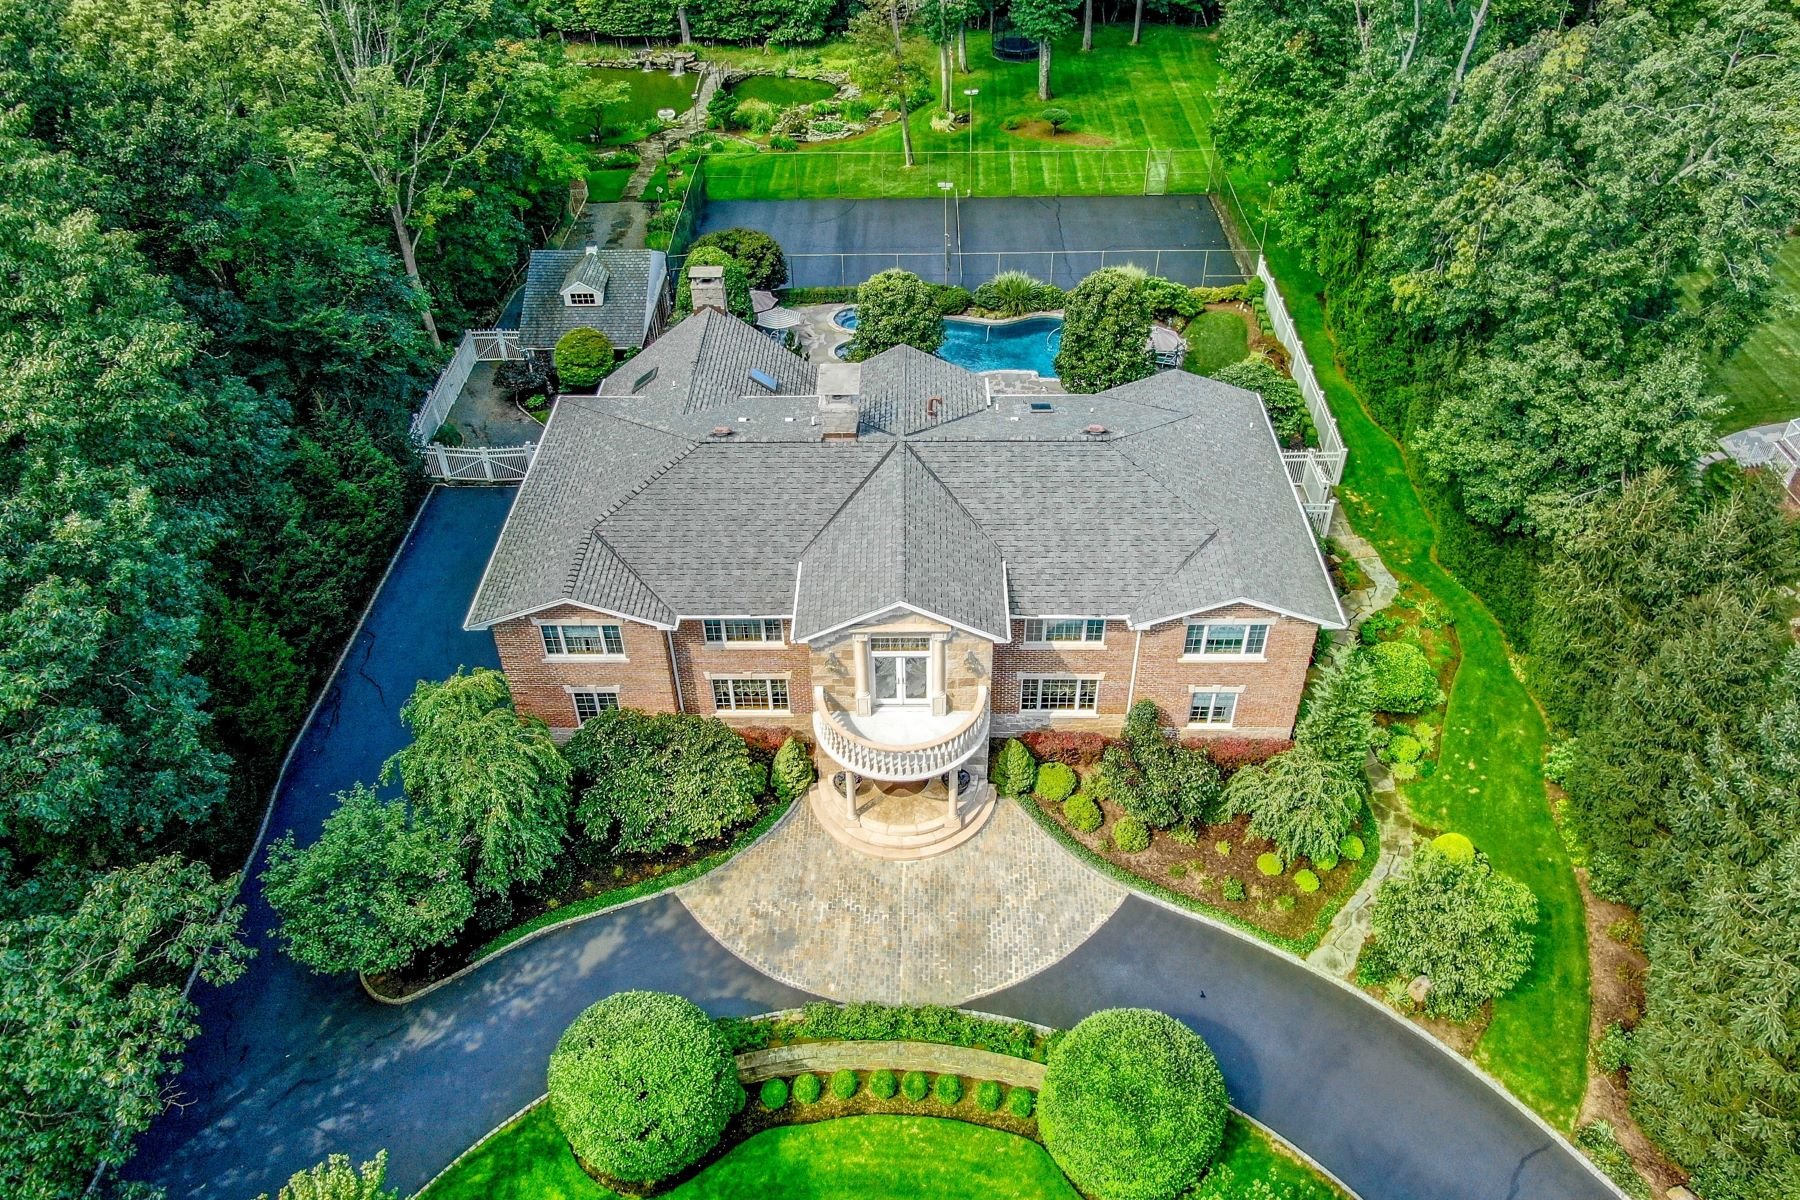 Single Family Homes for Sale at World Class Luxury Estate 116 Oak Dr., Upper Saddle River, New Jersey 07458 United States